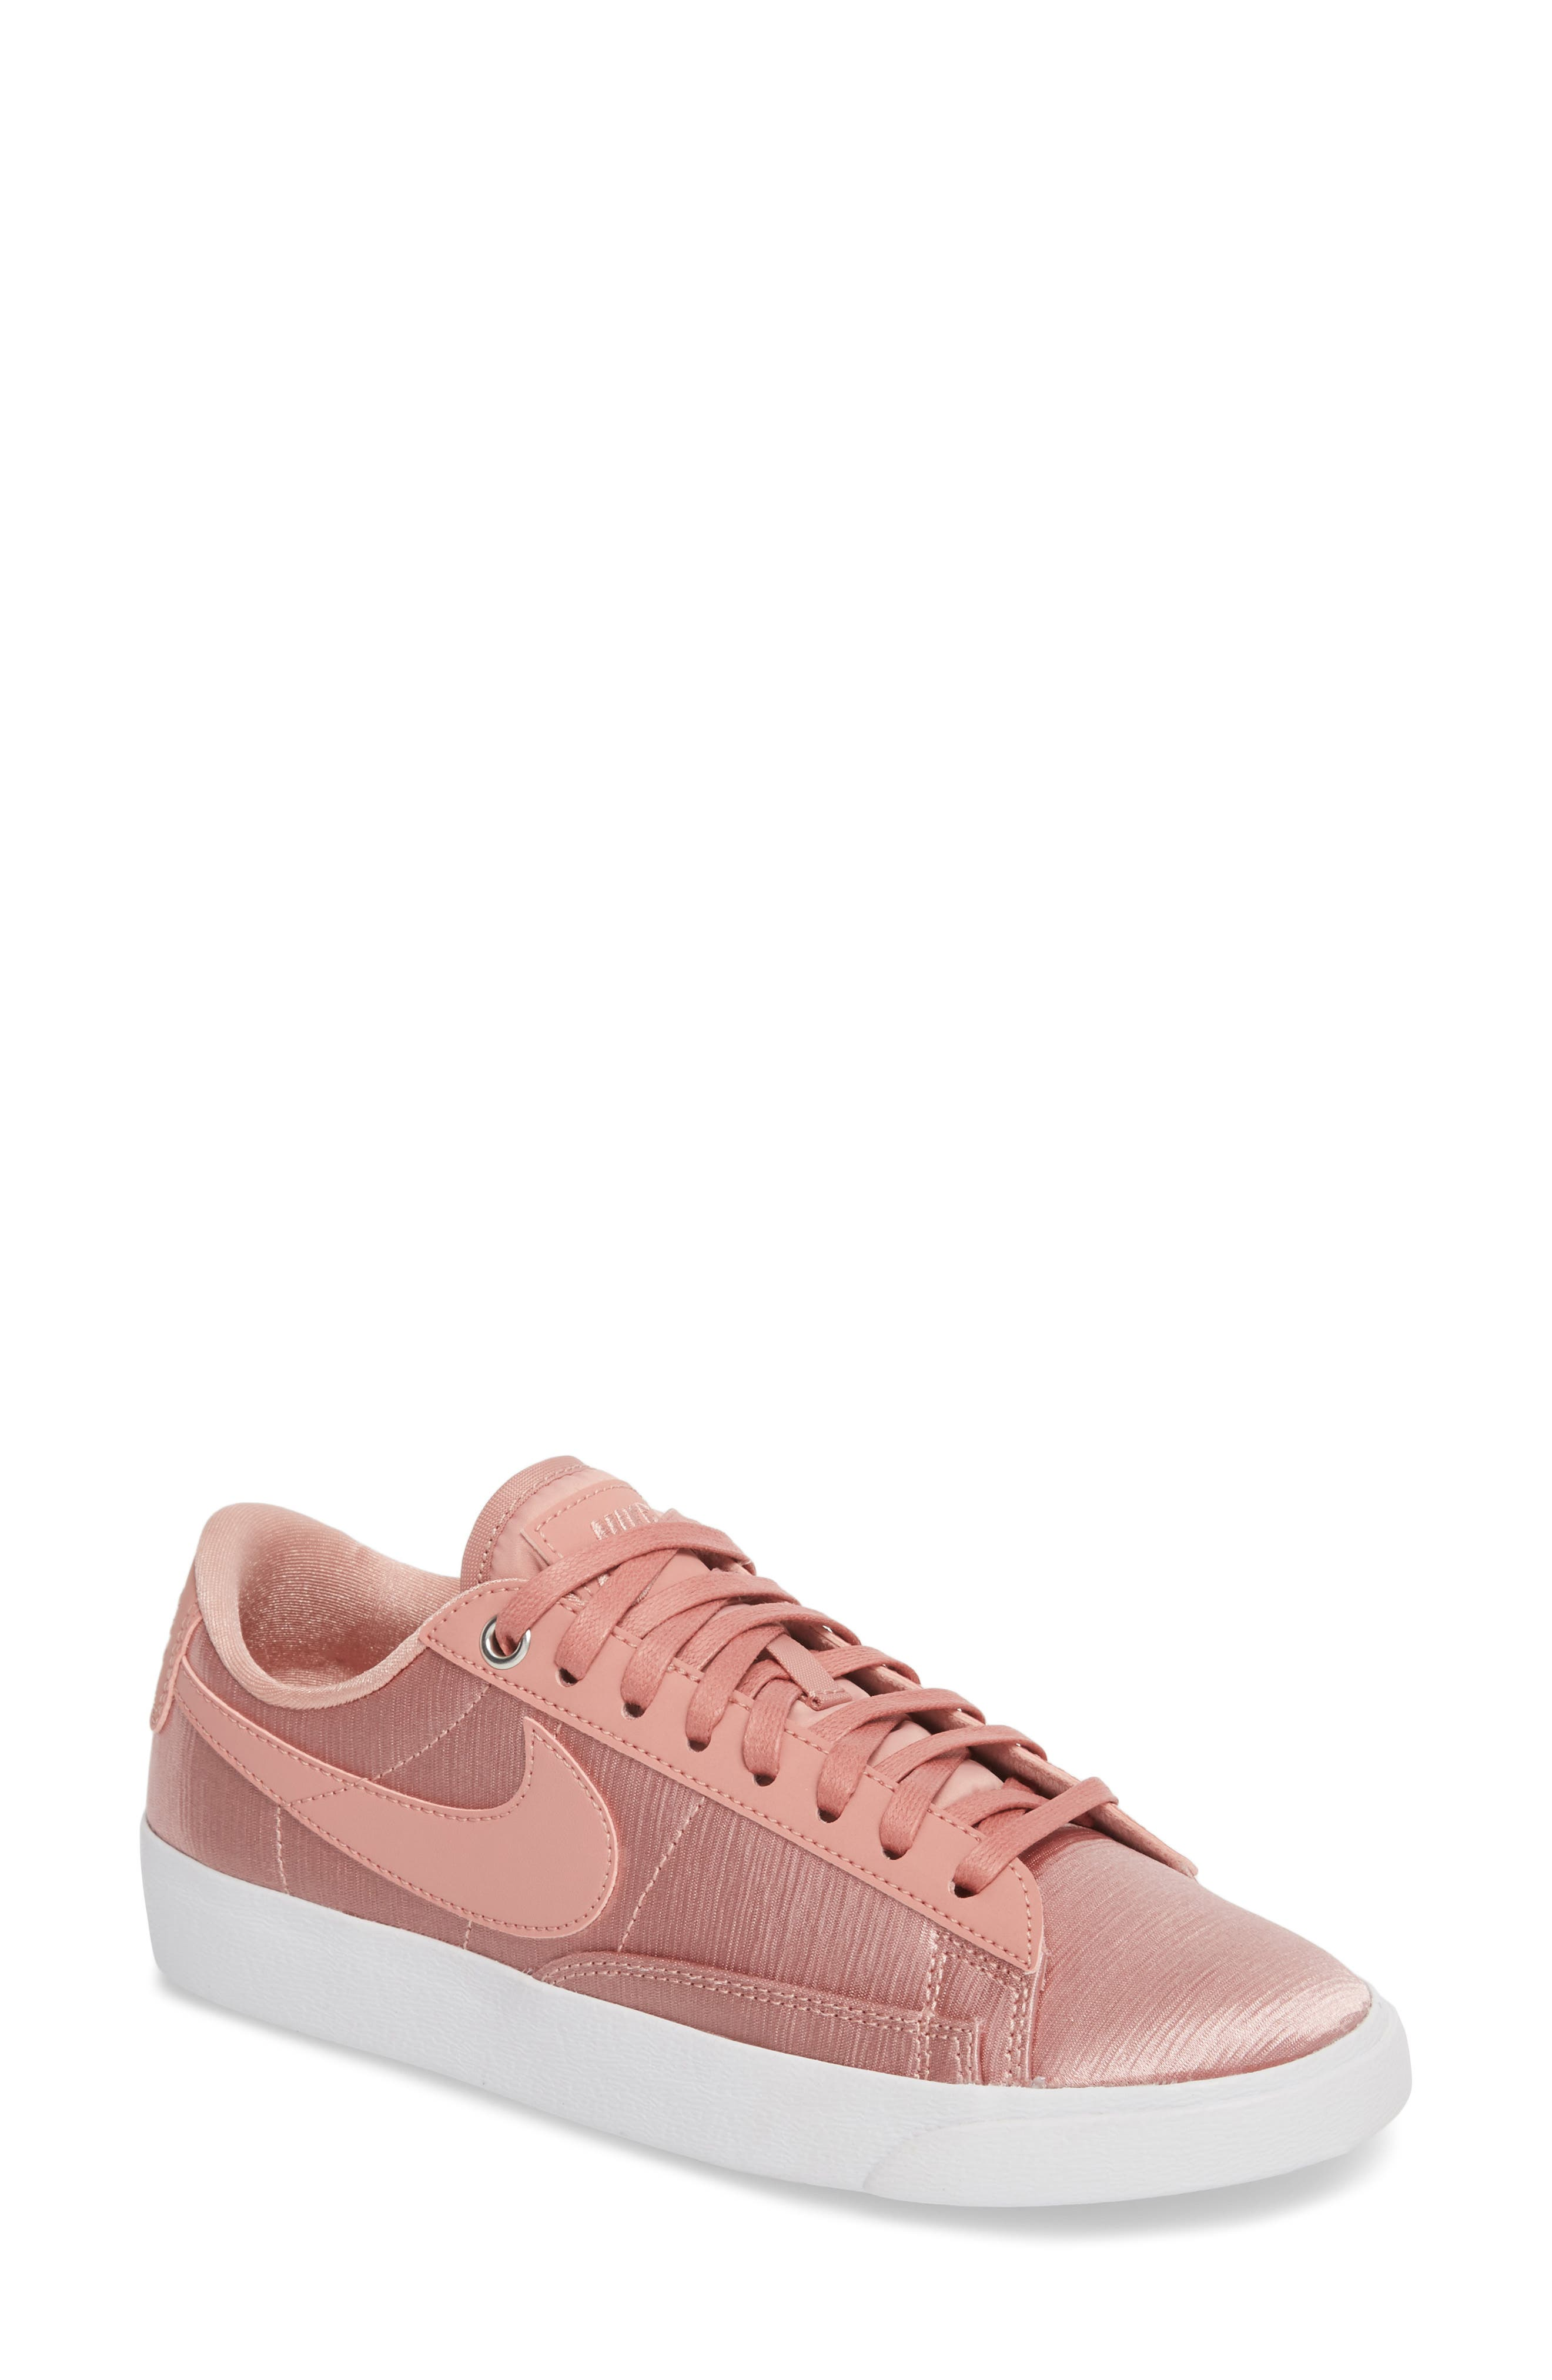 Blazer Low SE Sneaker,                         Main,                         color, Rust Pink/ Rust Pink